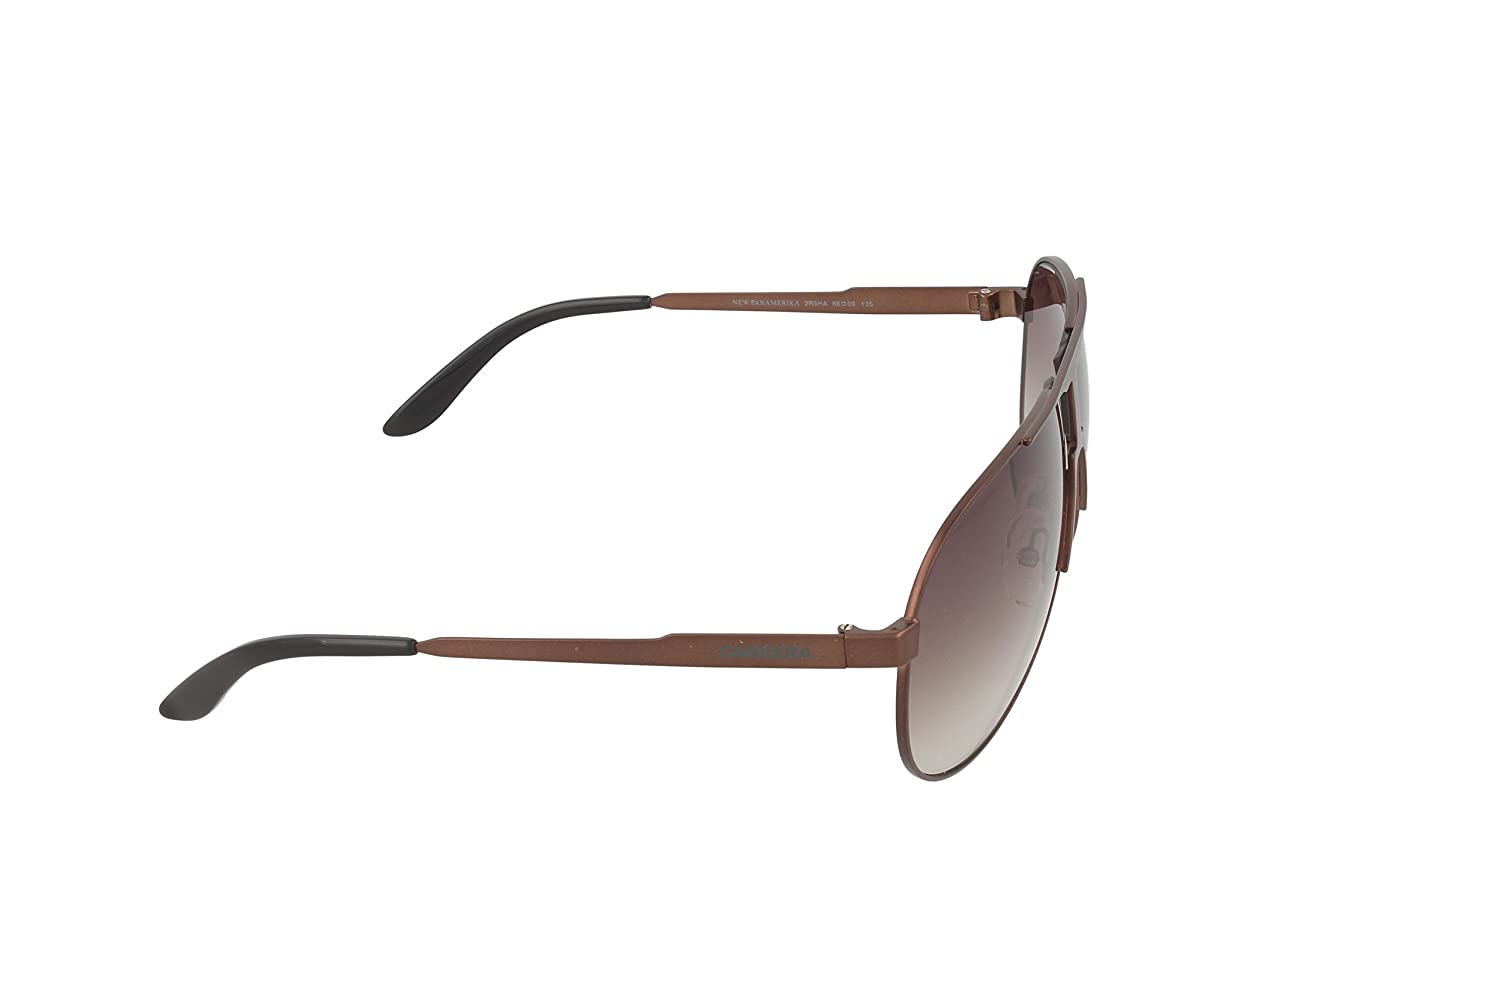 5f57cf1874 Amazon.com  Carrera New Panamerika S Sunglasses NEWPAS-02R5-HA-6609 - Semi  Matte Brown Frame